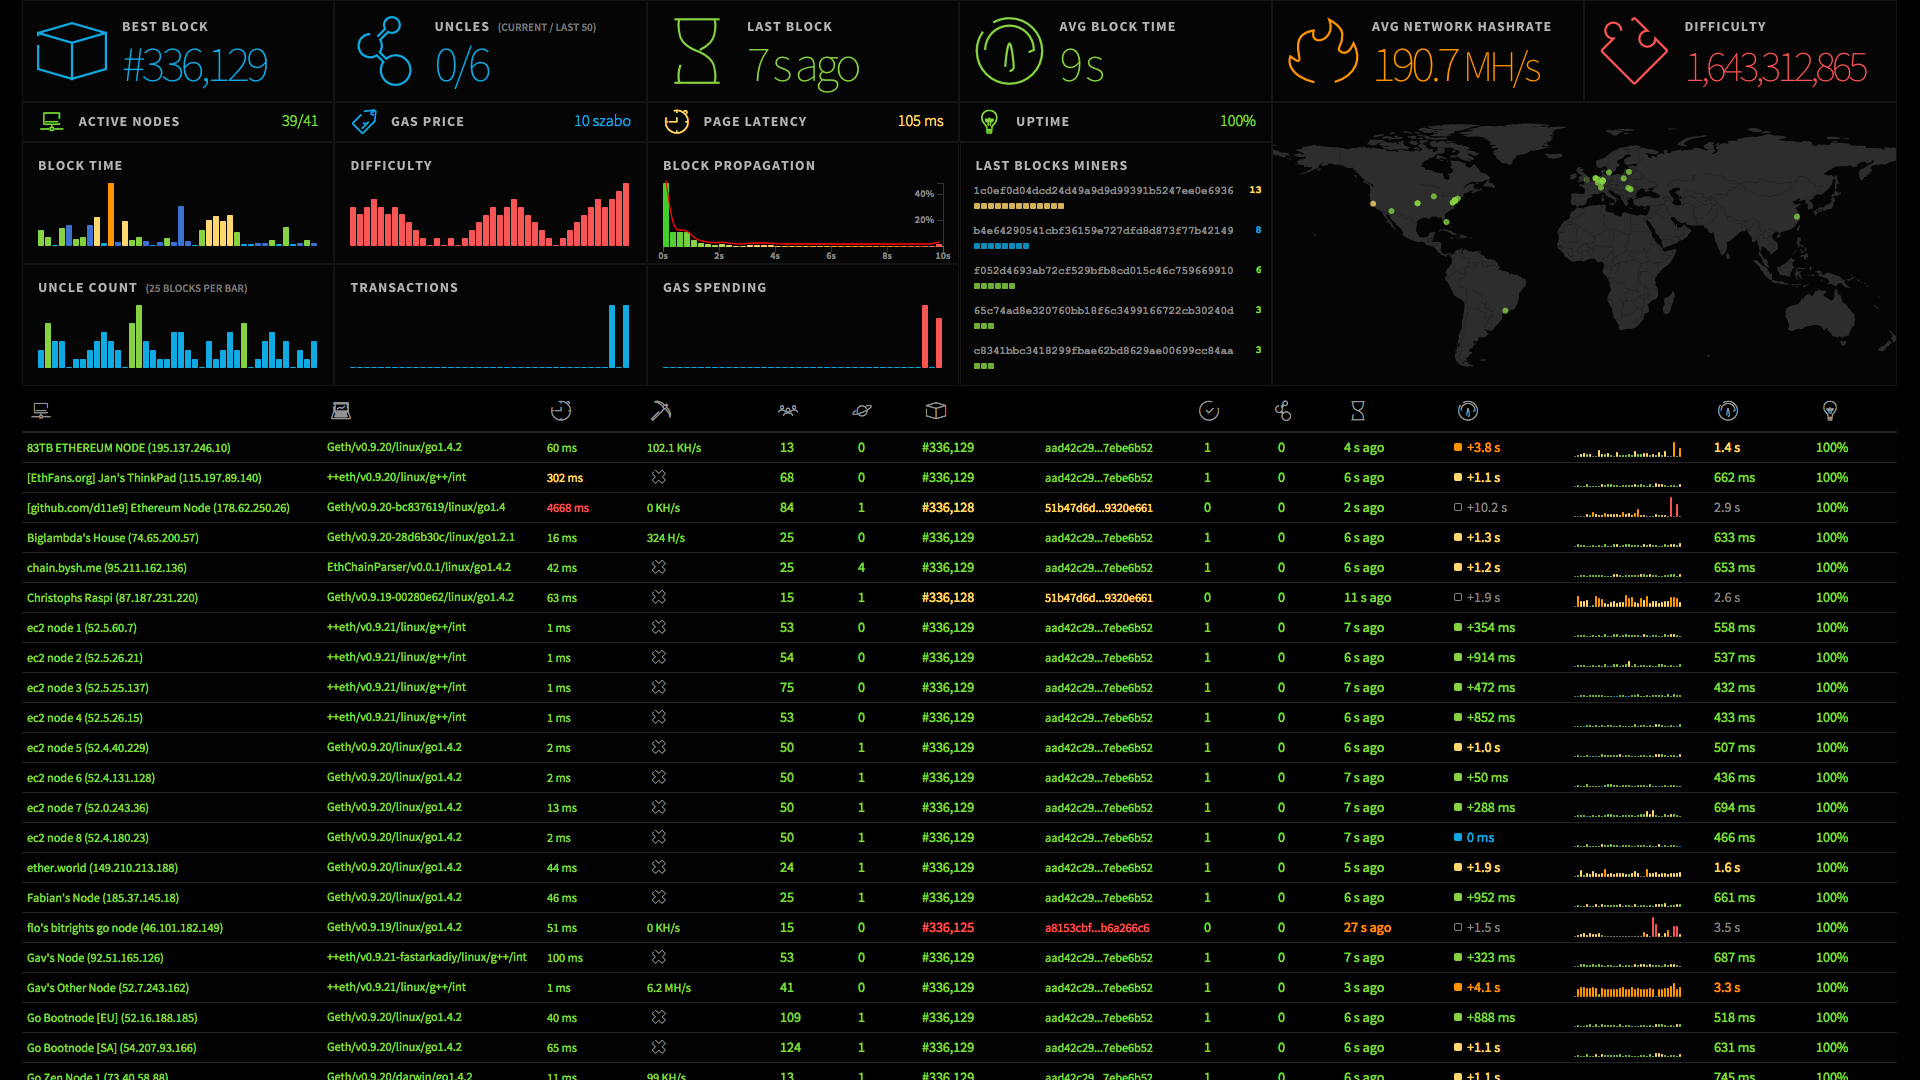 Network statistics dashboard